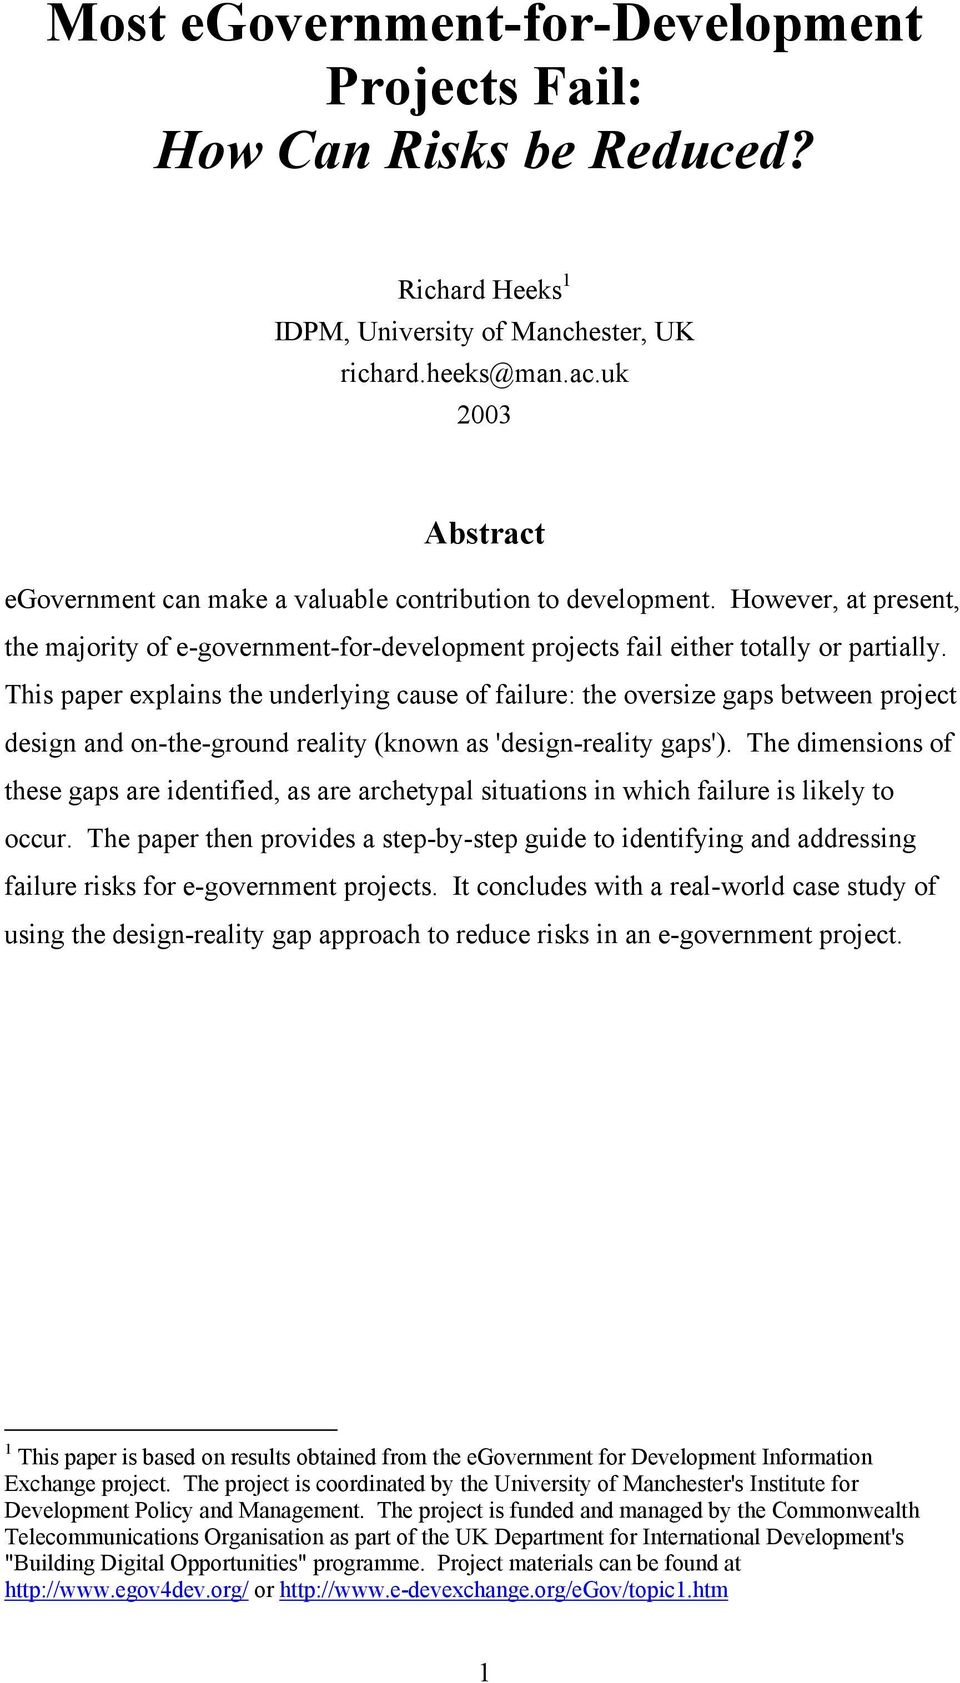 This paper explains the underlying cause of failure: the oversize gaps between project design and on-the-ground reality (known as 'design-reality gaps').